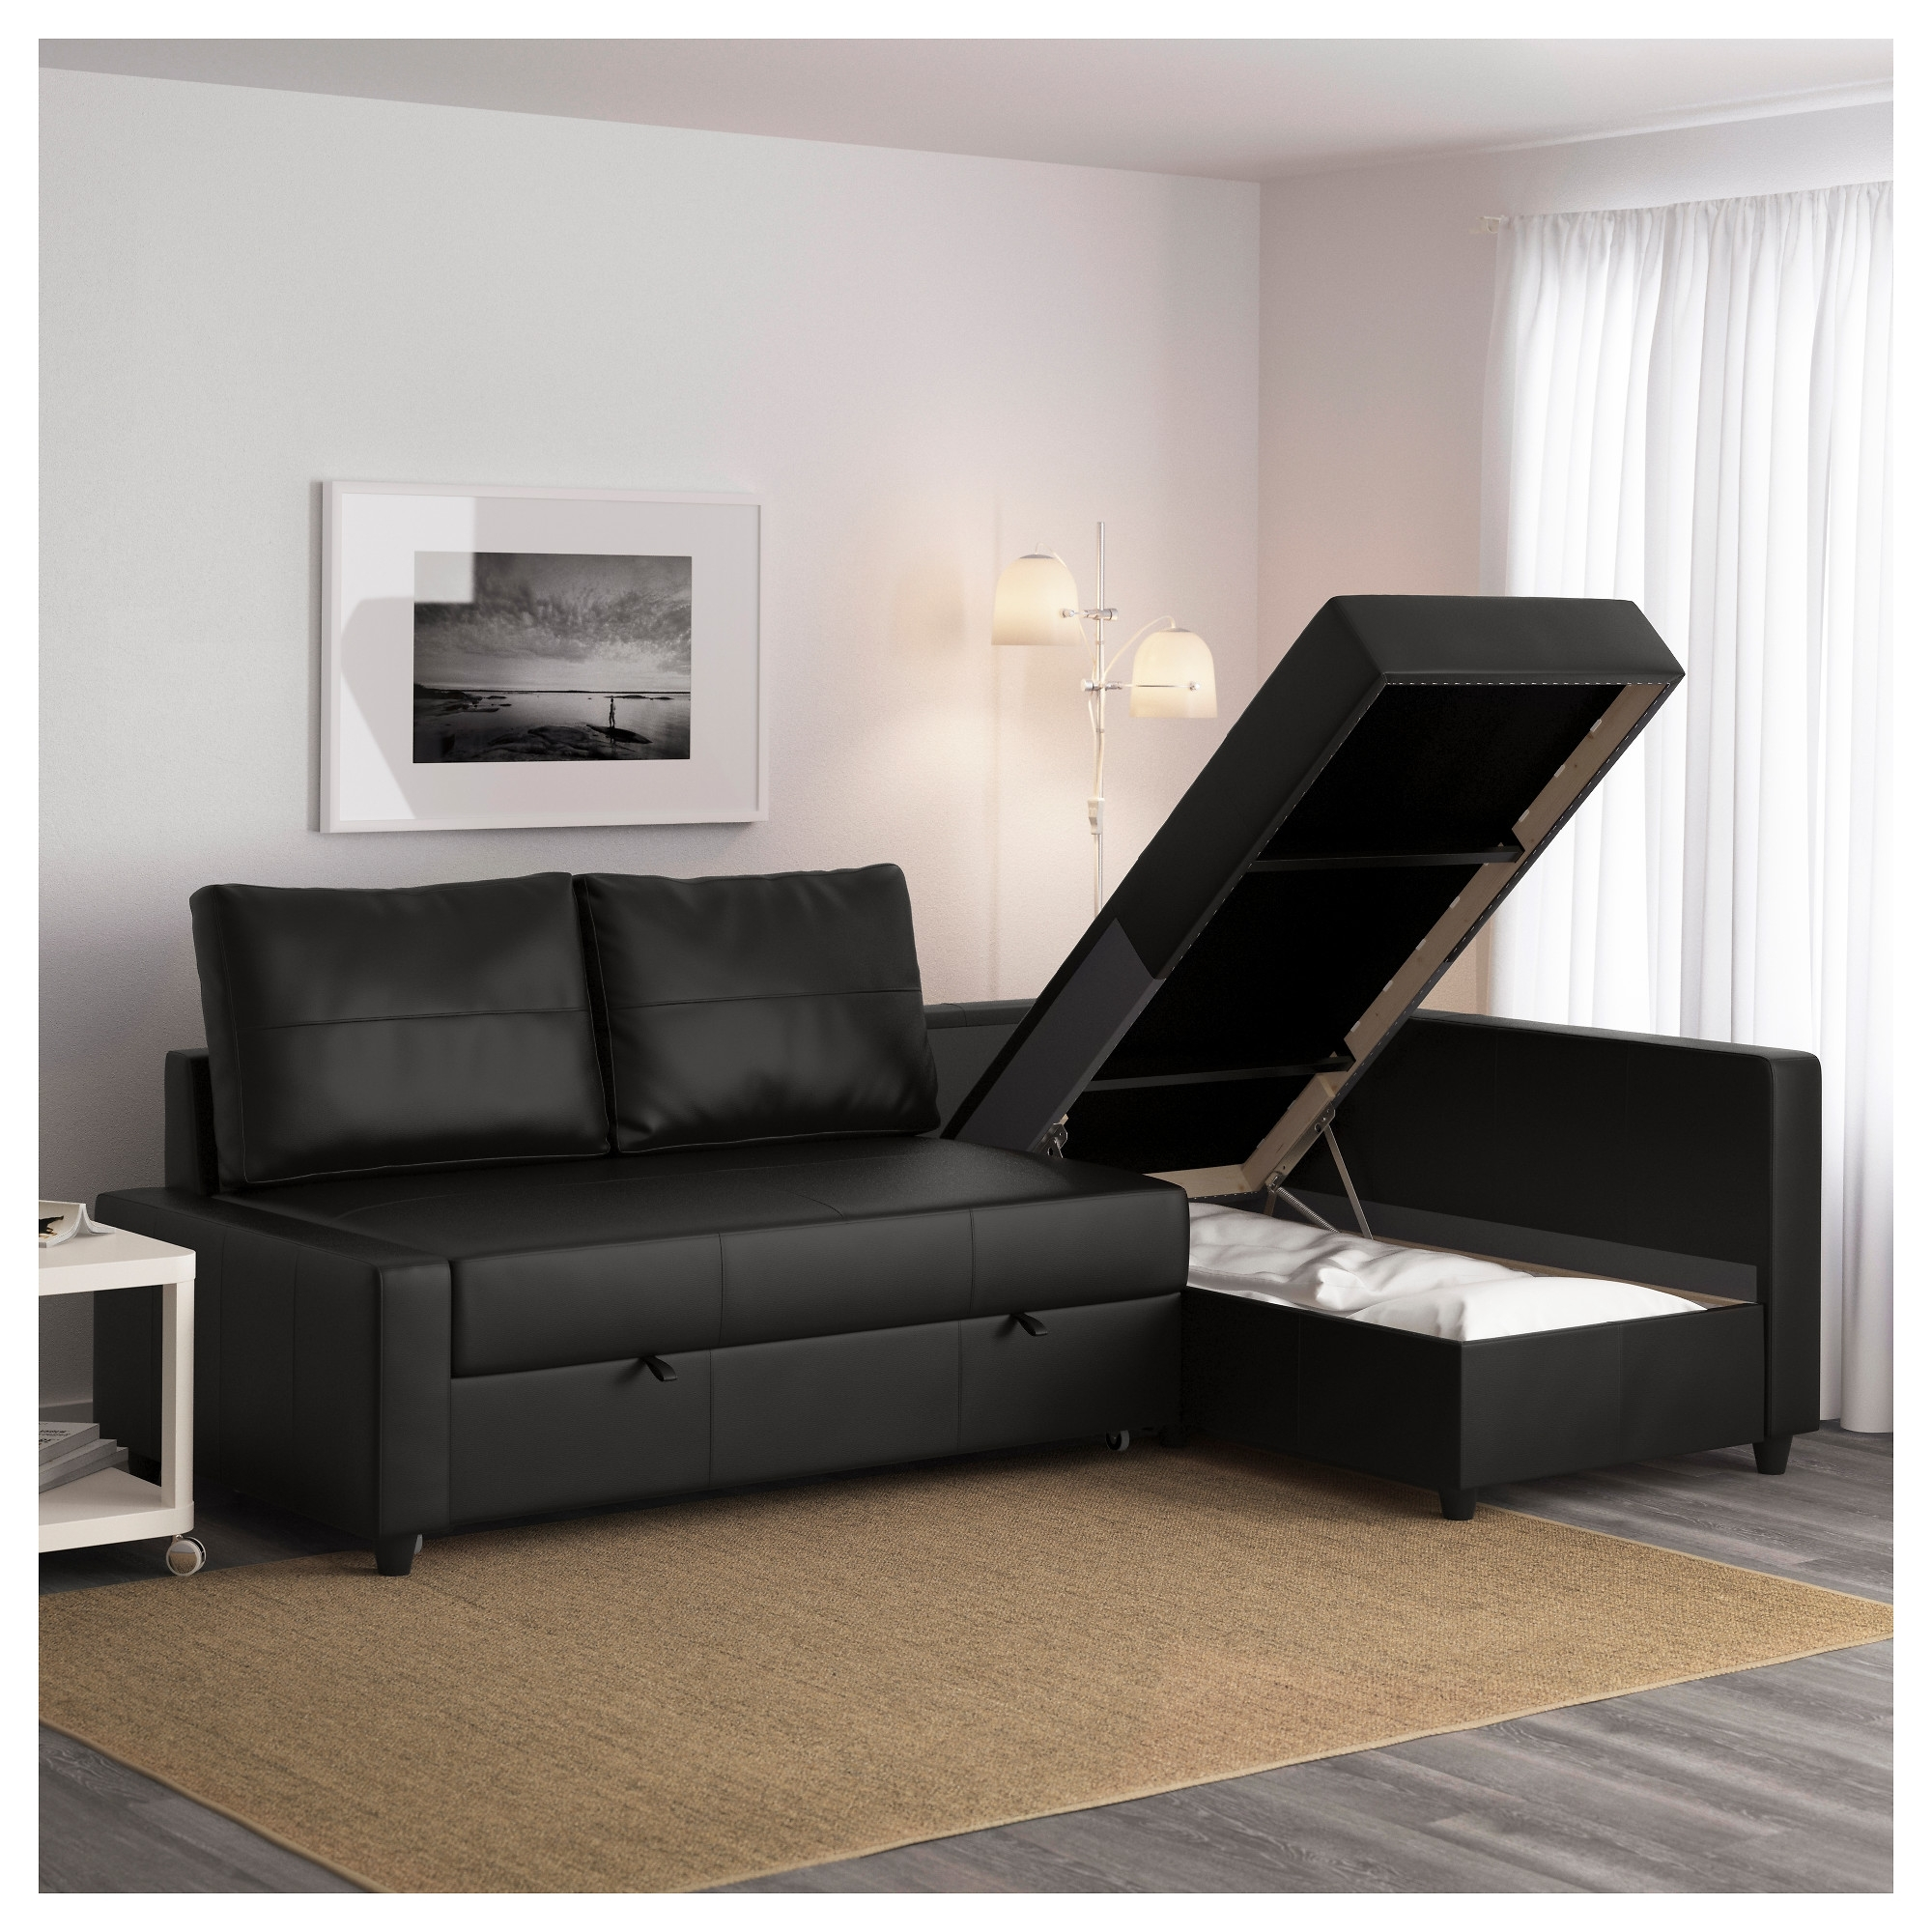 Most Current Friheten Sleeper Sectional,3 Seat W/storage – Skiftebo Dark Gray In Gray Couches With Chaise (View 15 of 15)